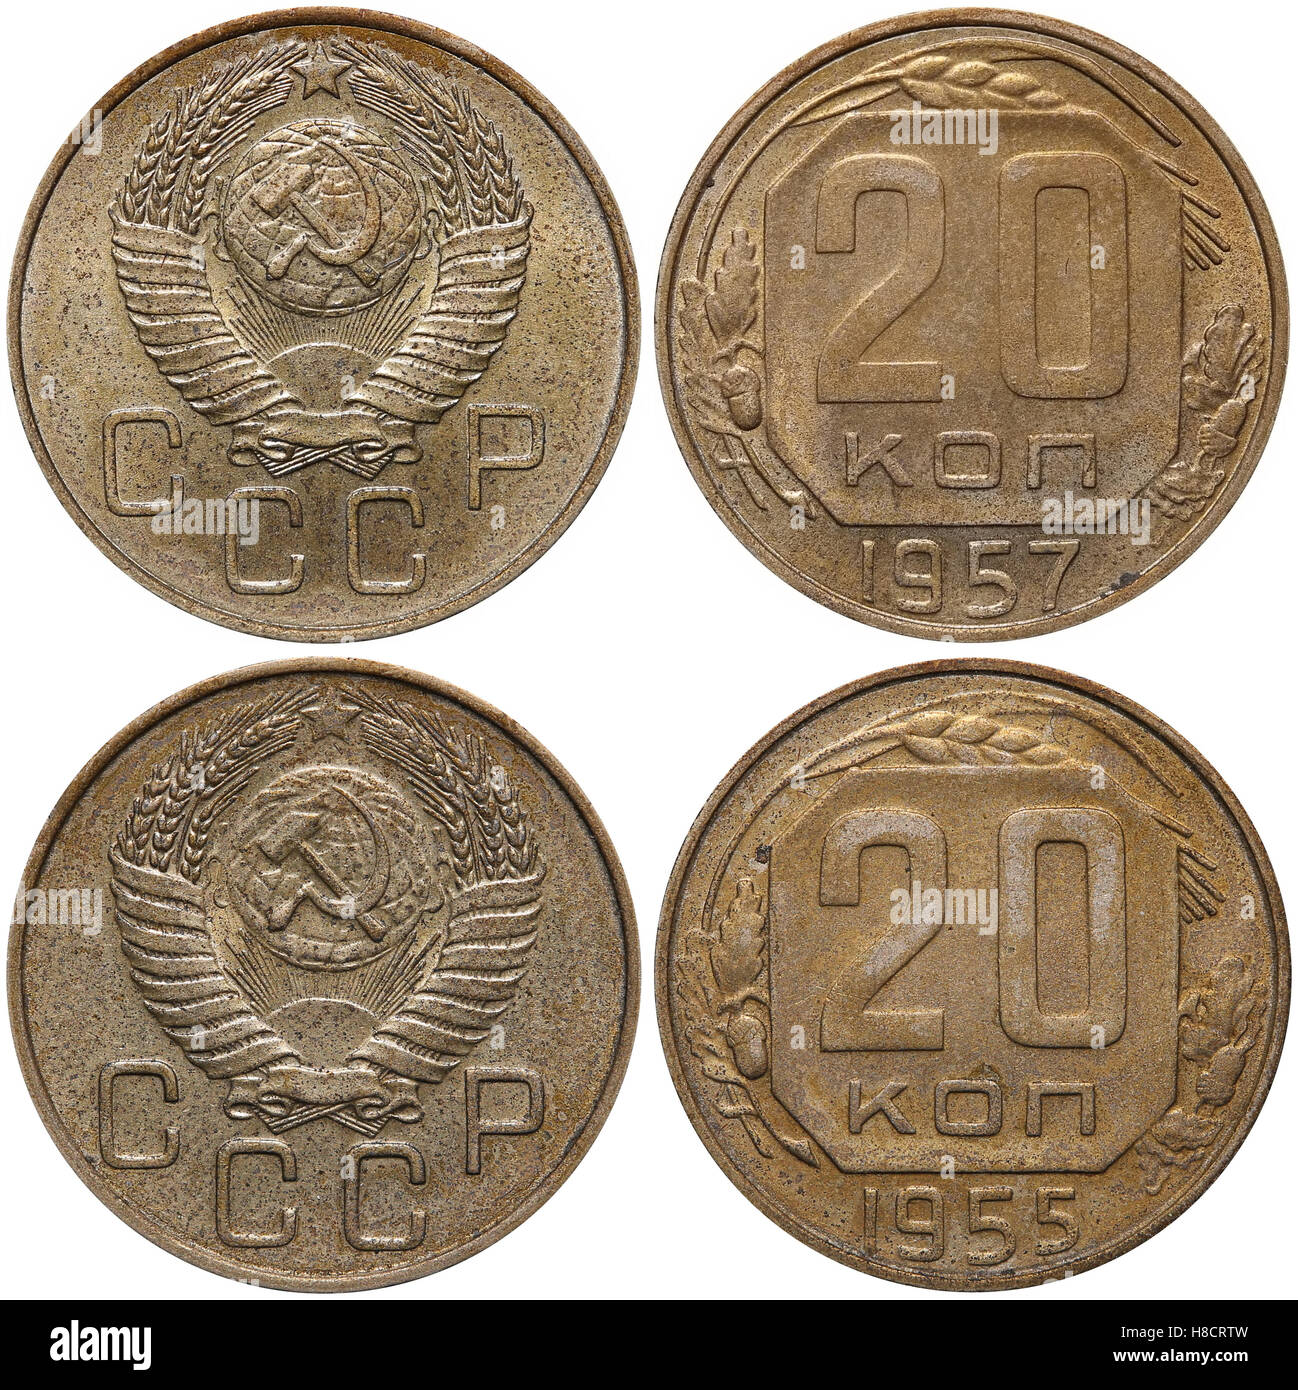 20 Kopek coin formerly used in the Soviet Union. - Stock Image